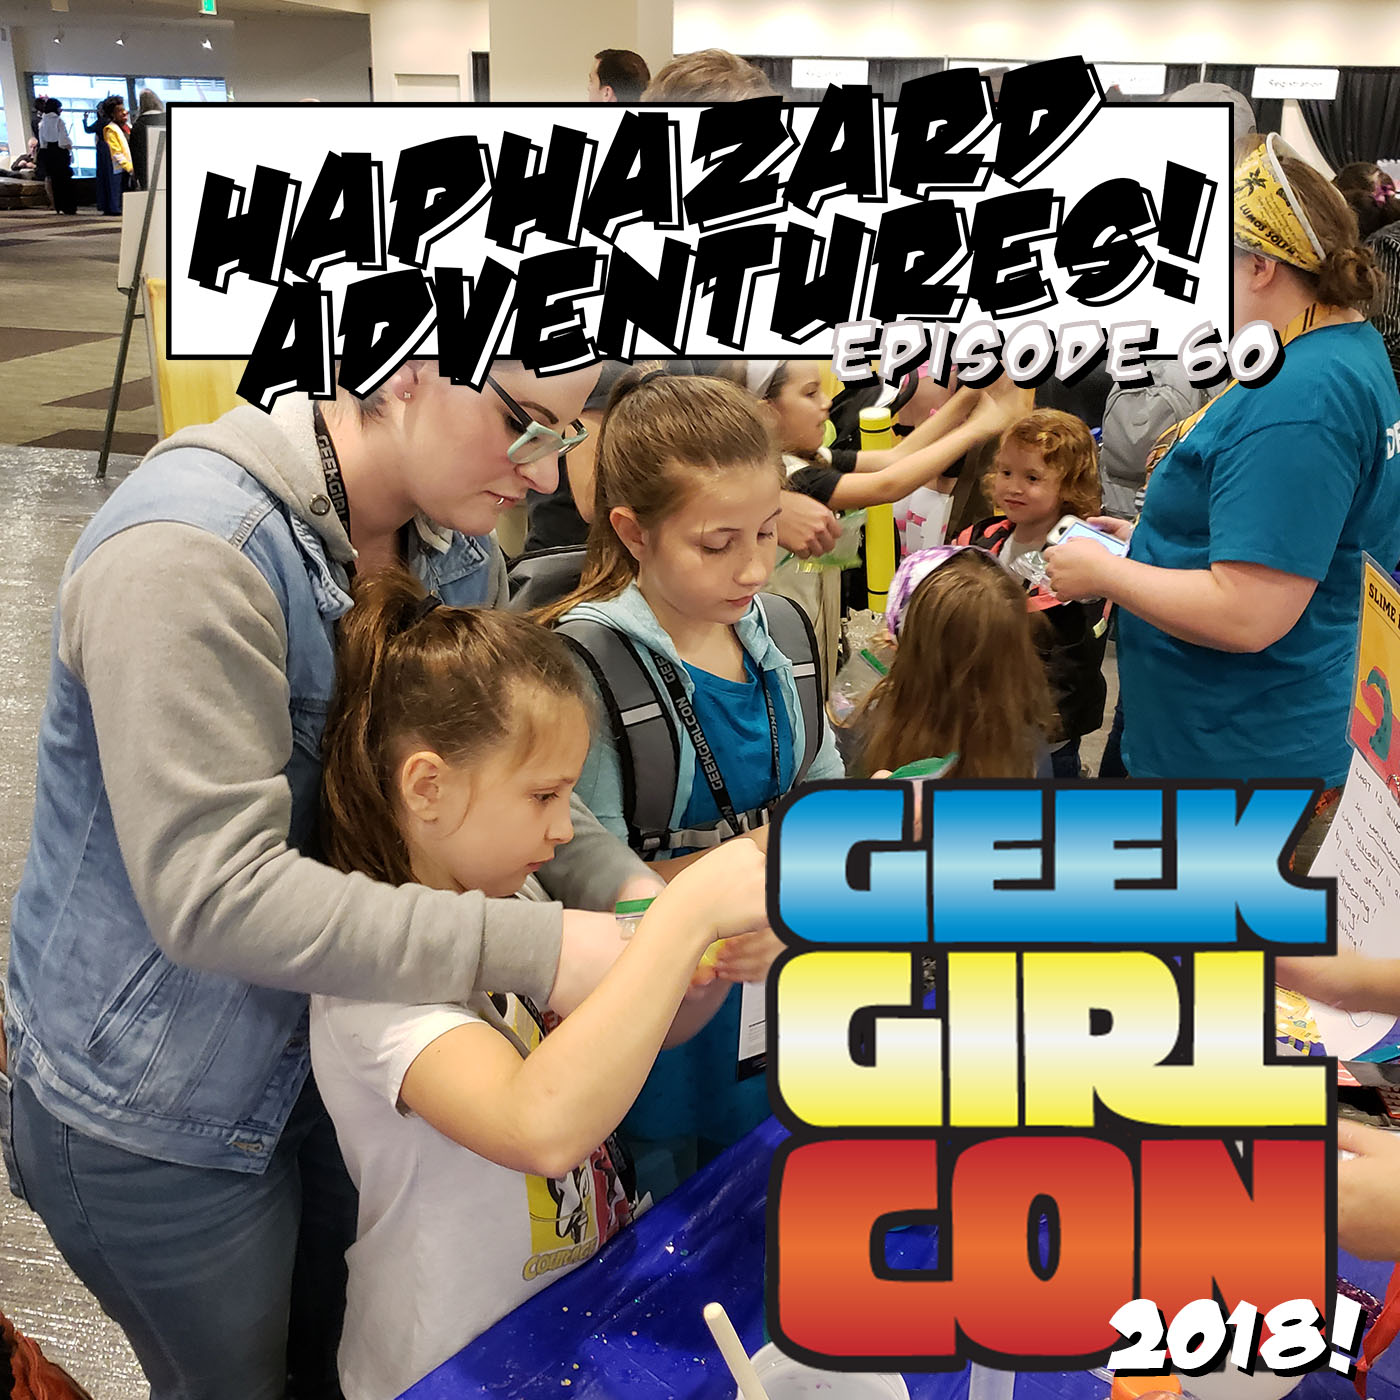 Geek Girl Con 2018! We brought the girls!